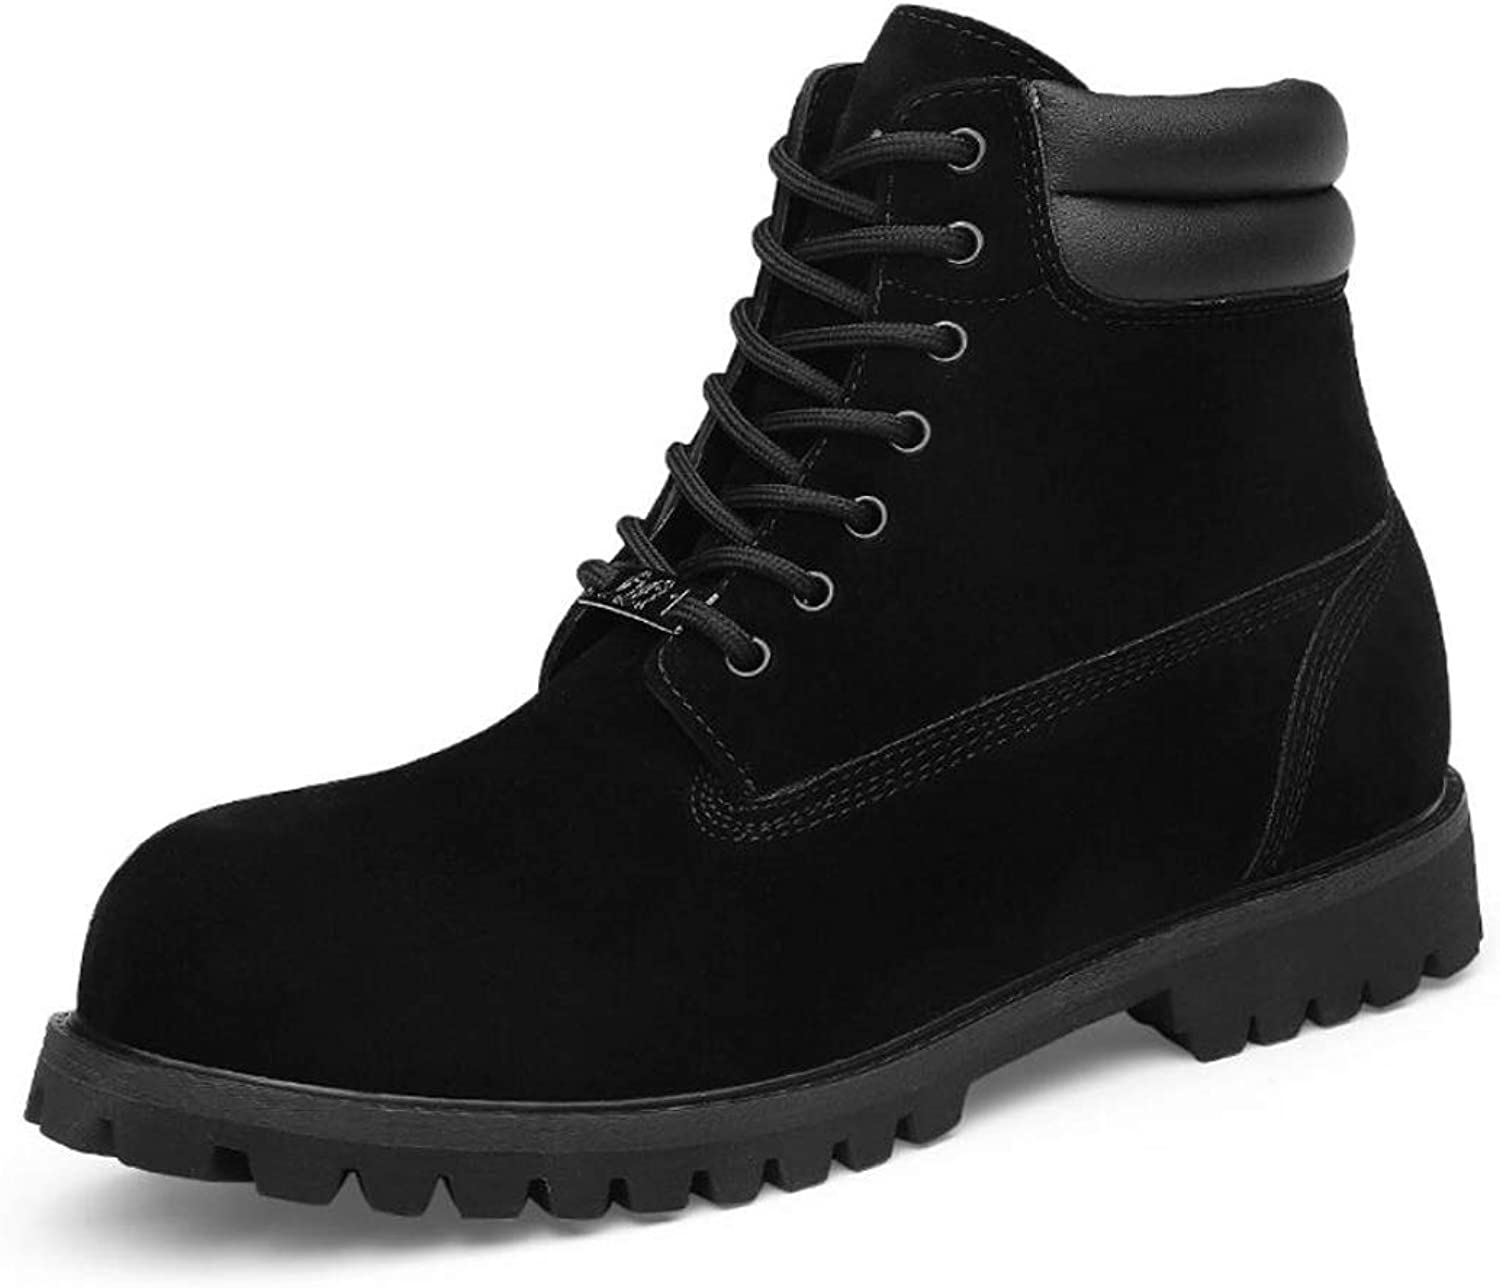 Zxcvb Men's Casual Lace up Round Toe Fashion Ankle Leather Combat High help Martin Boots for Men Suede